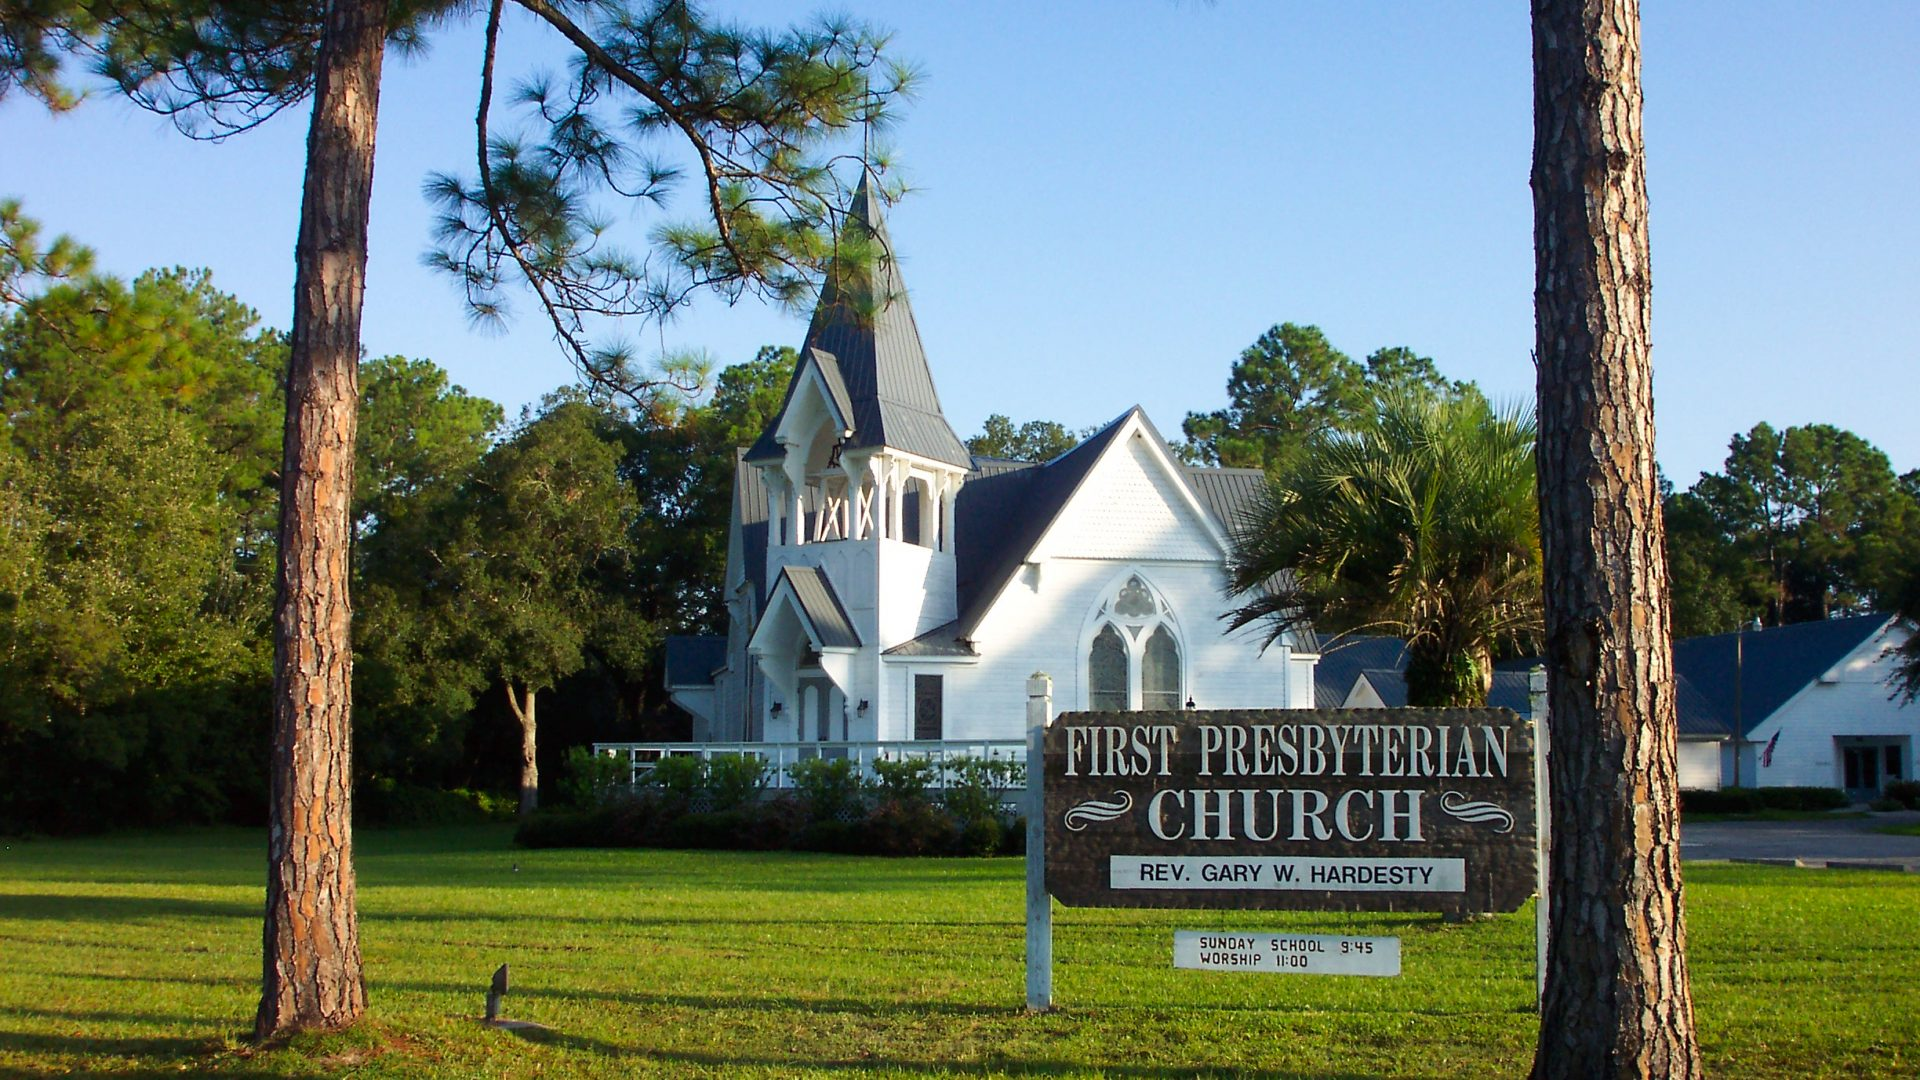 Additions to First Presbyterian Church, Starke, Fla.